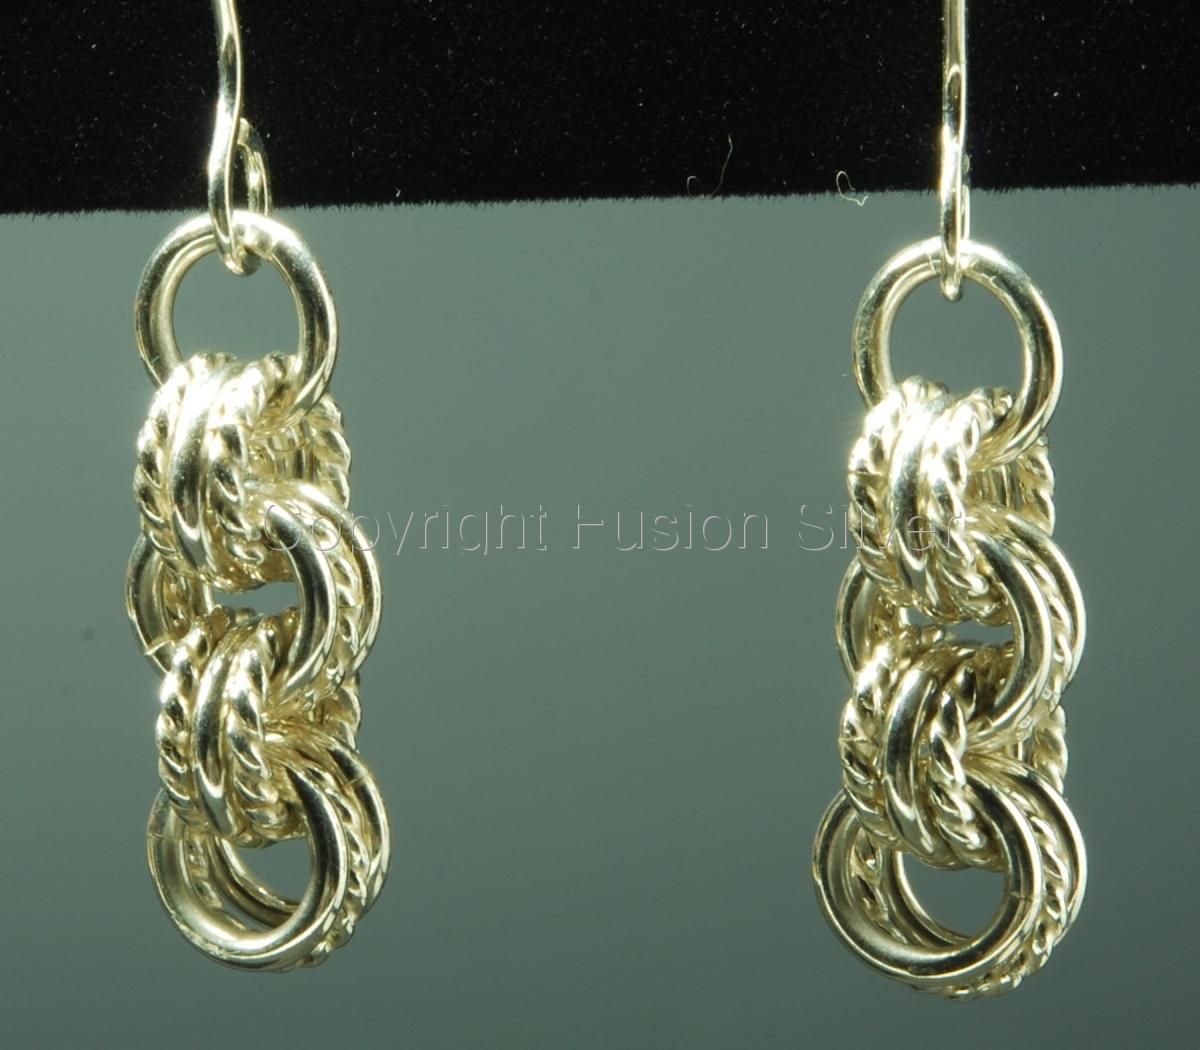 3 in 3 earrings with twisted wire (large view)